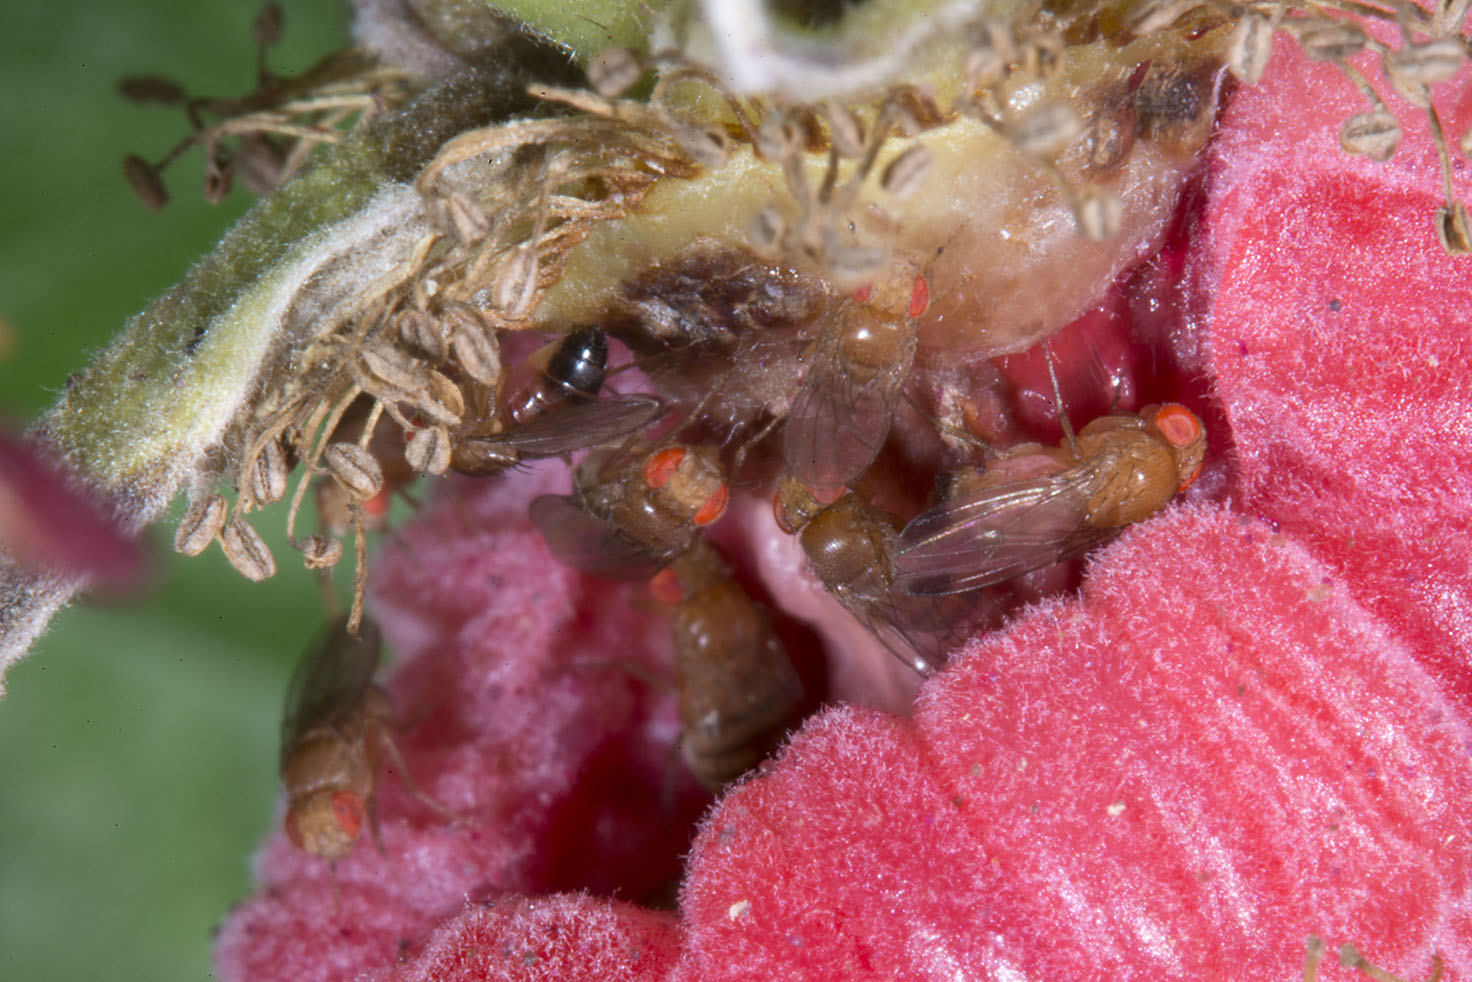 Both male and female SWD adults are seen inside this raspberry fruit